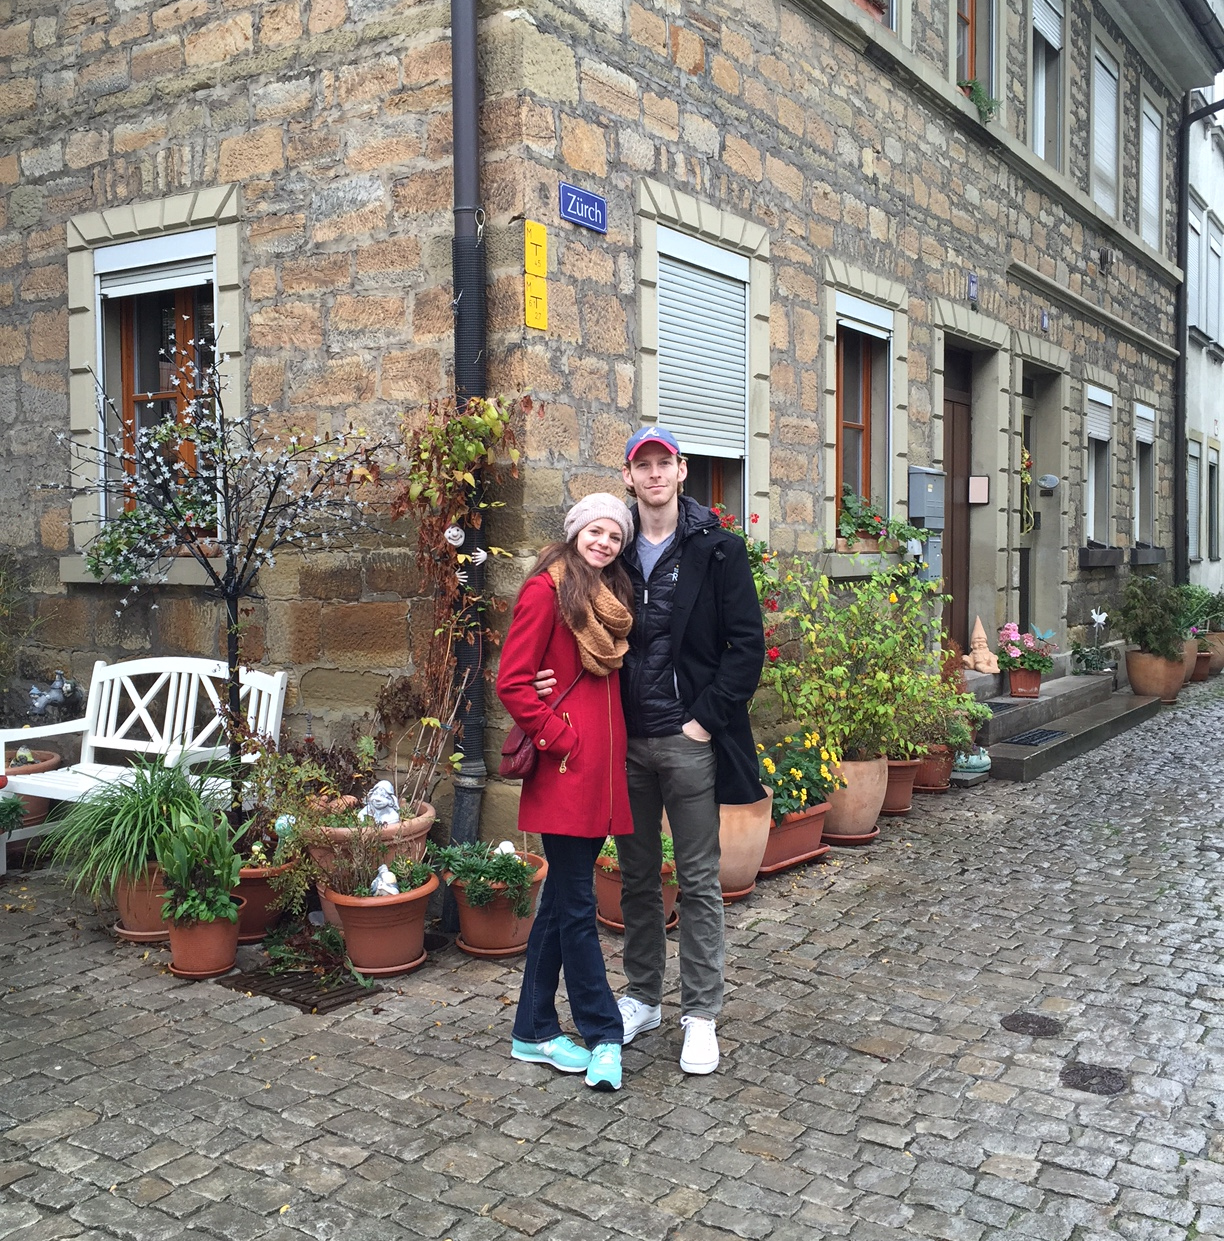 Walking the adorable streets in Germany